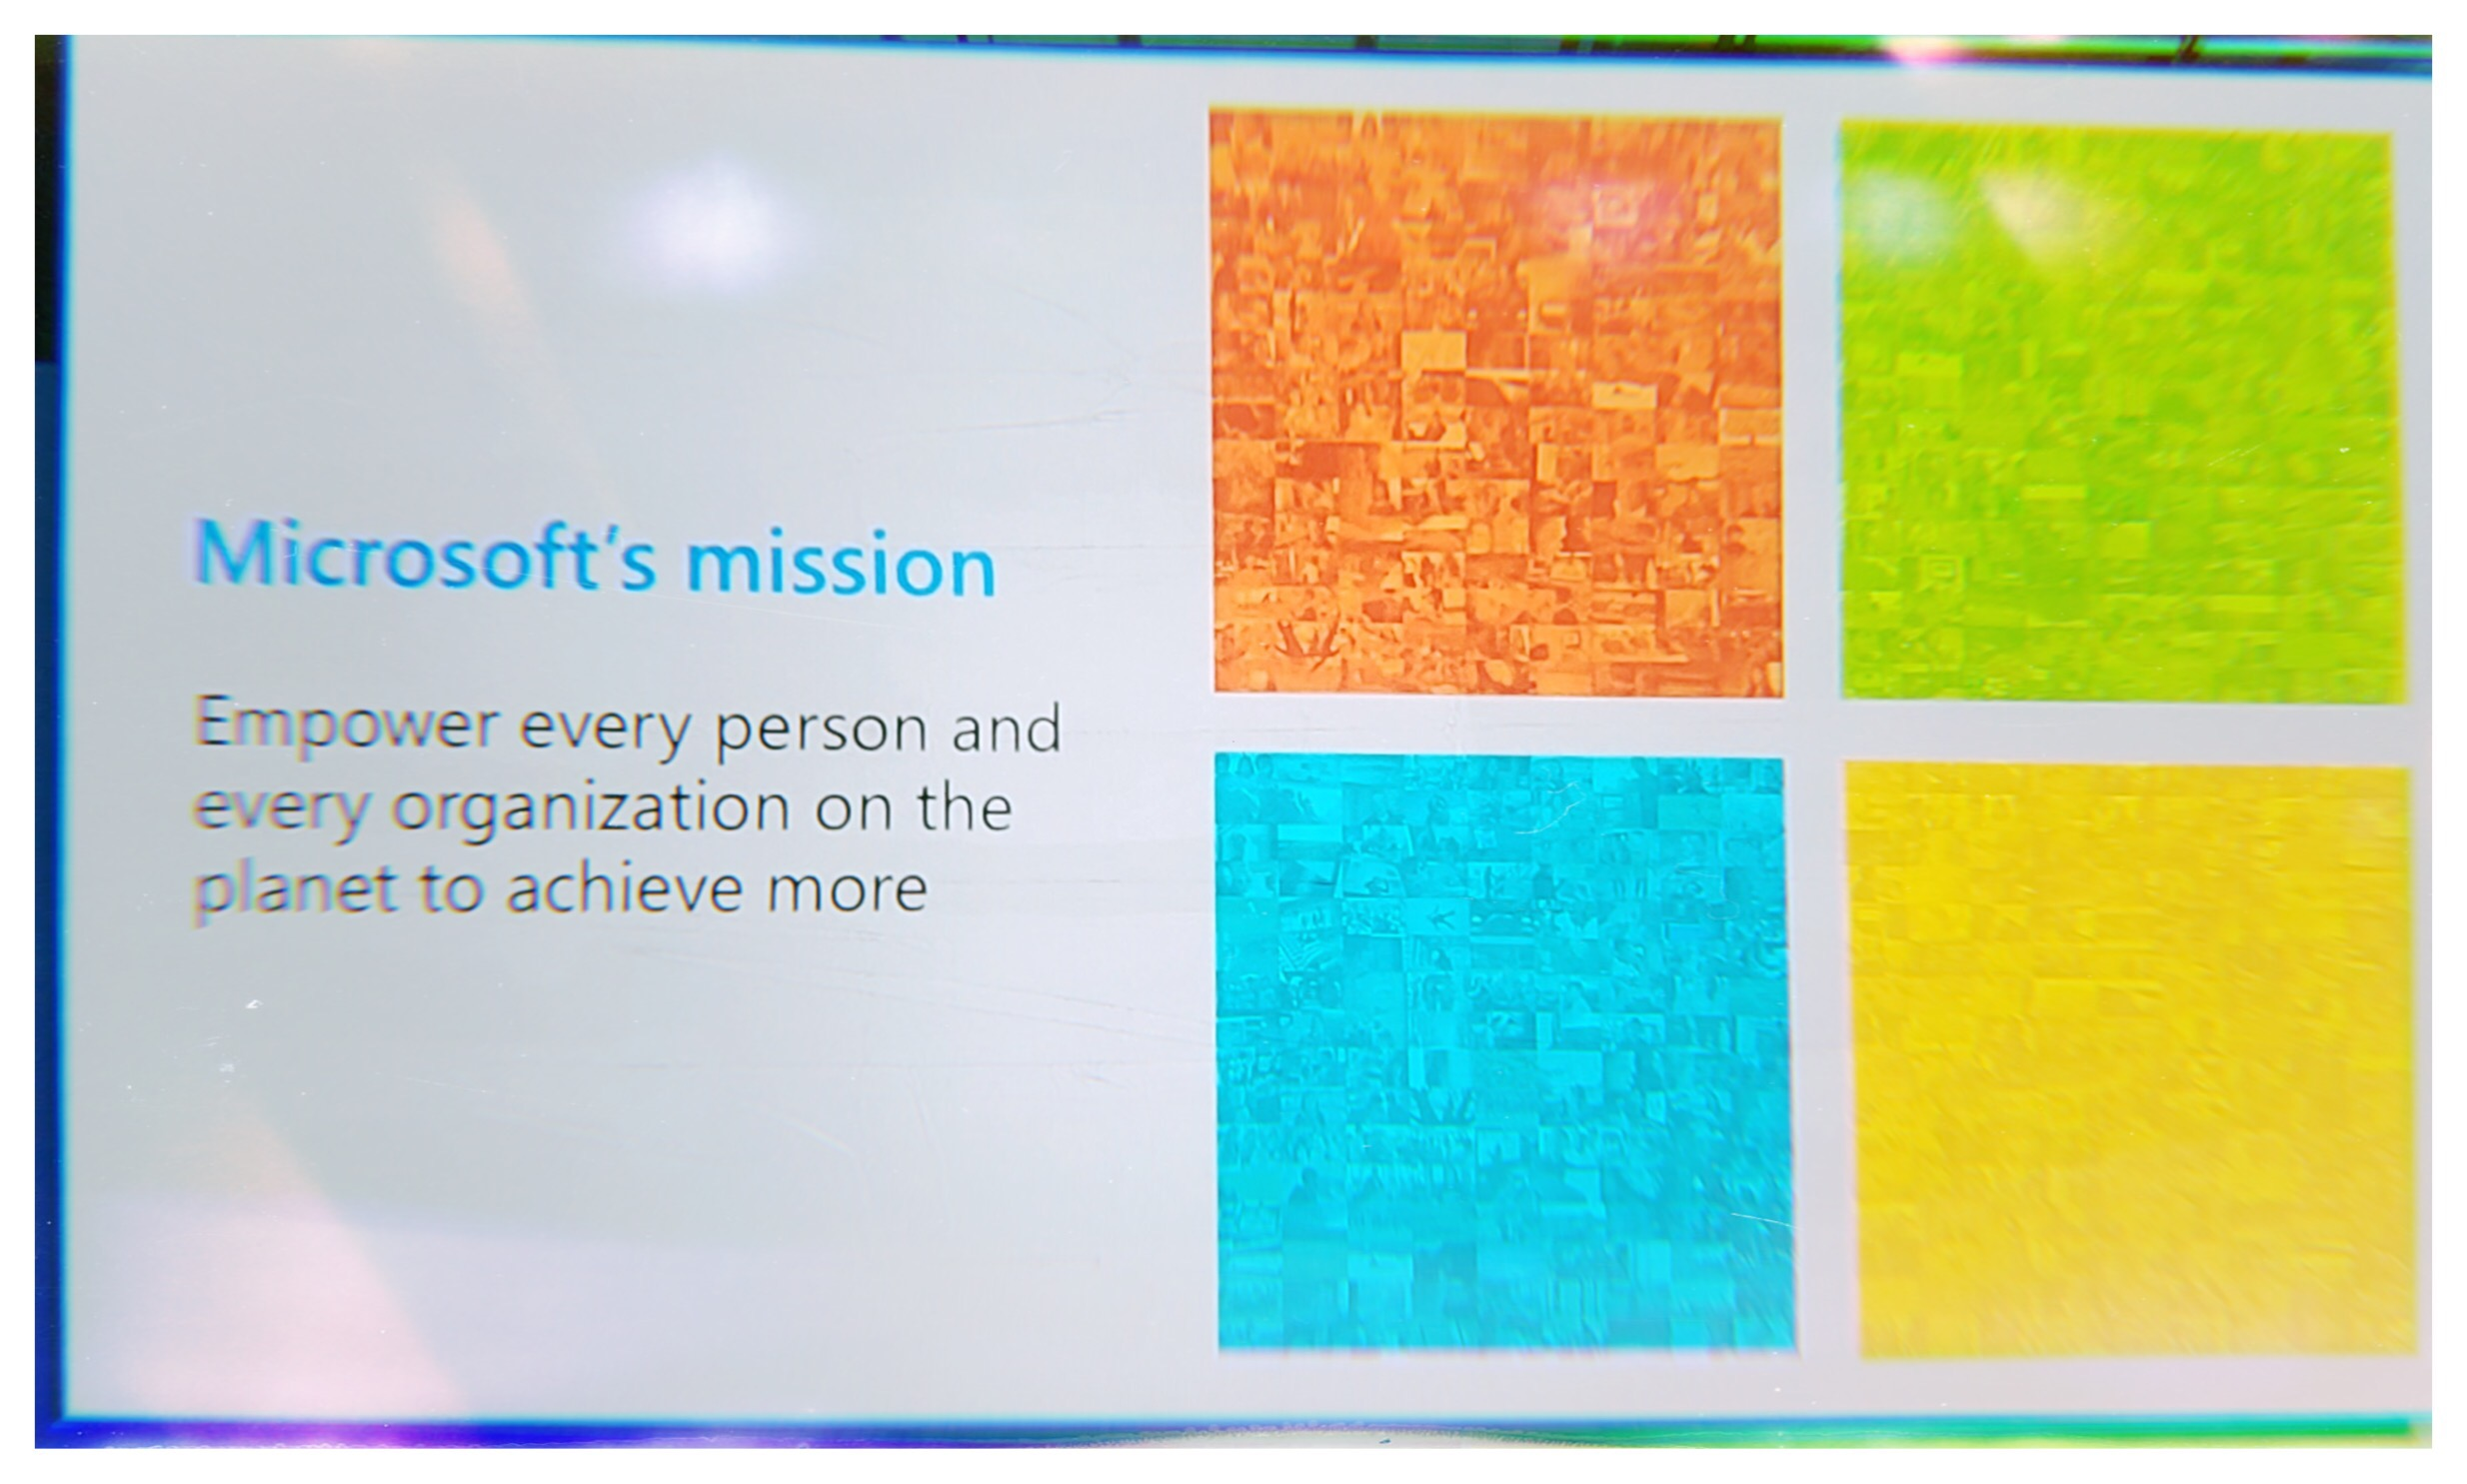 Microsoft Mission Statement